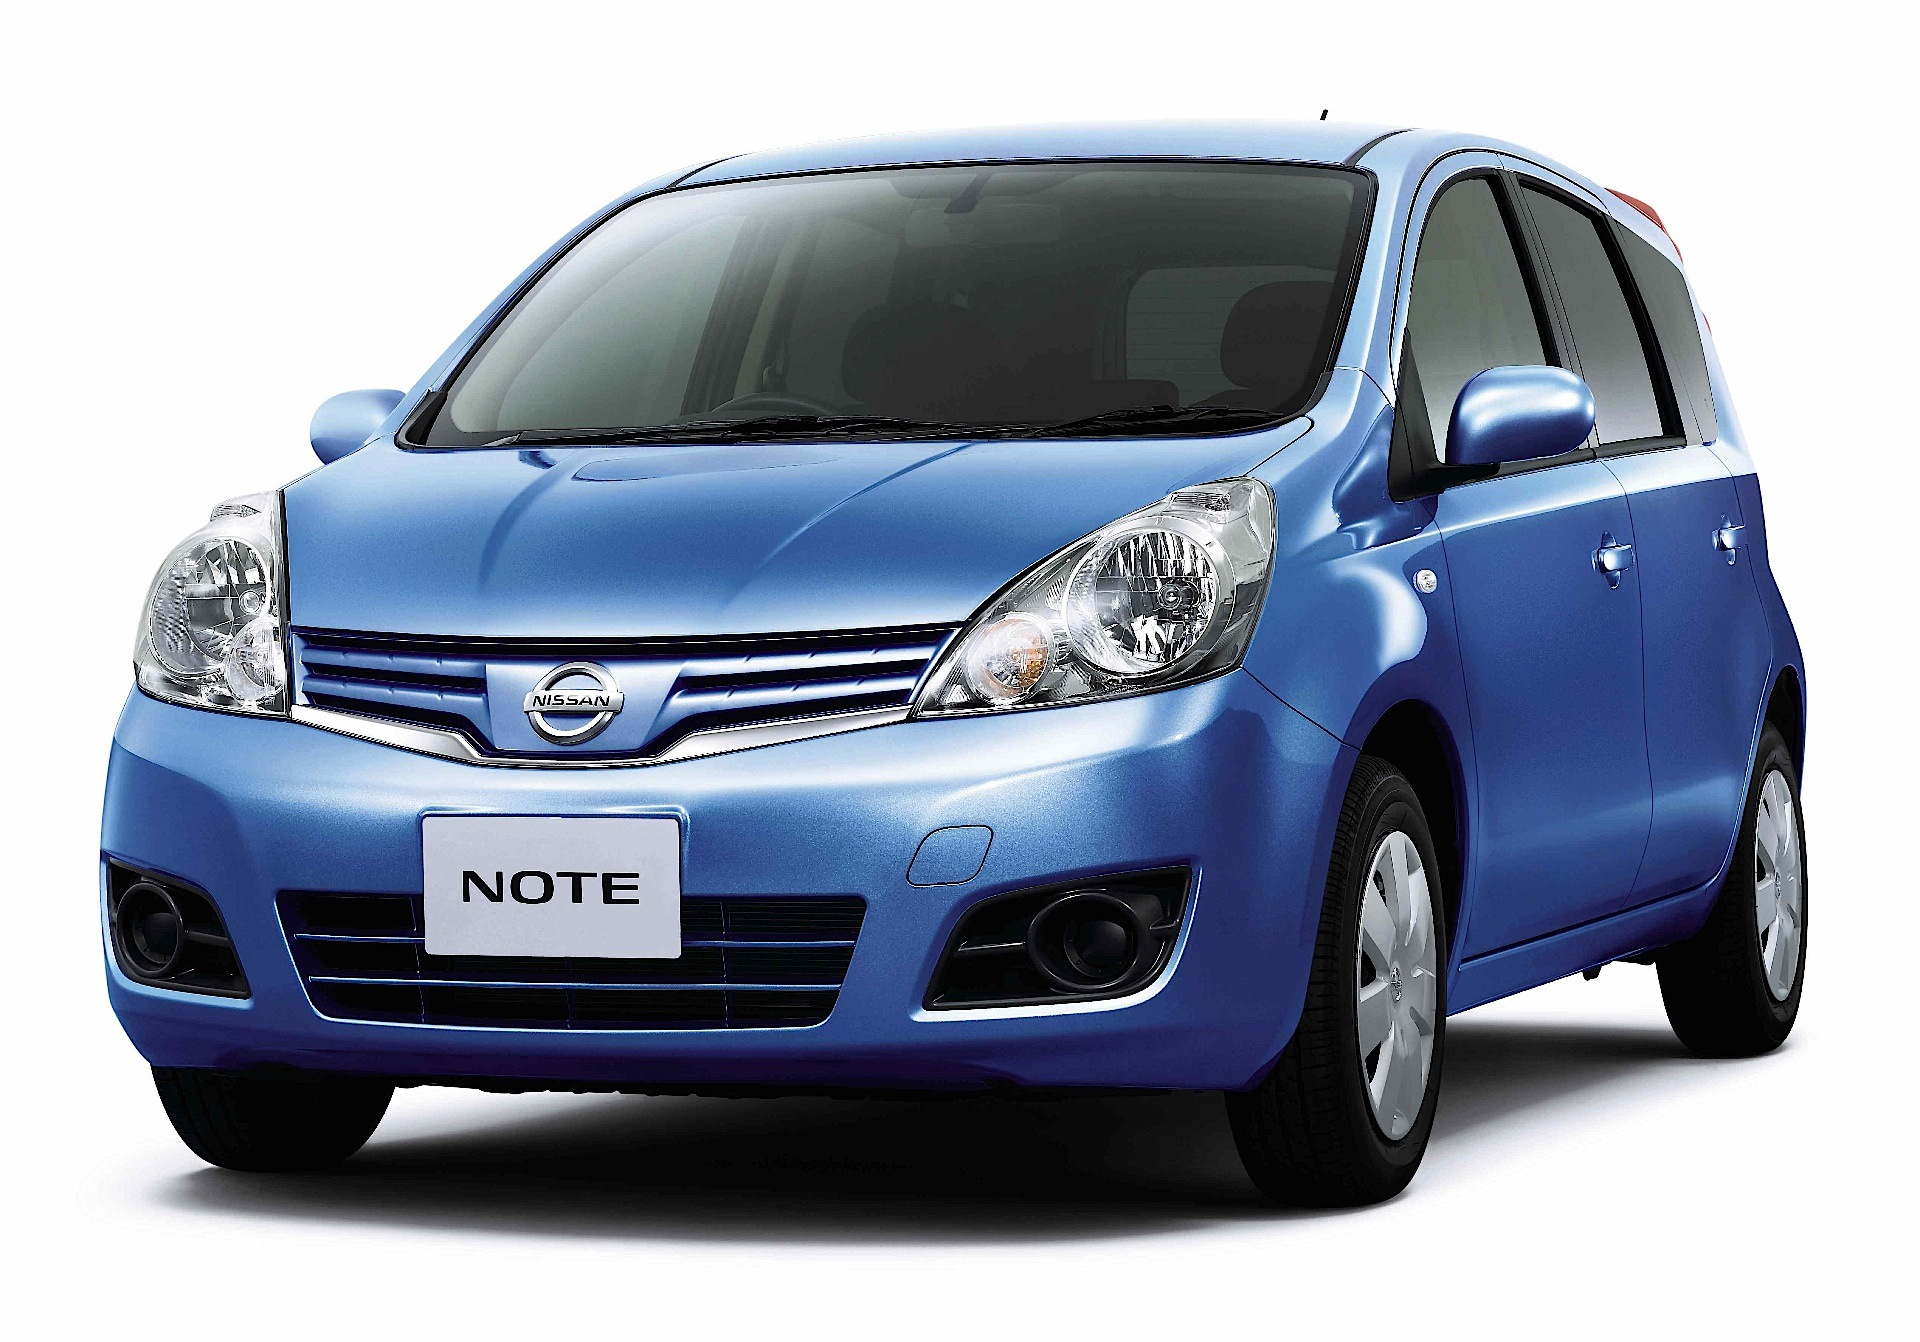 nissan note specs 2008 2009 2010 2011 2012 autoevolution. Black Bedroom Furniture Sets. Home Design Ideas